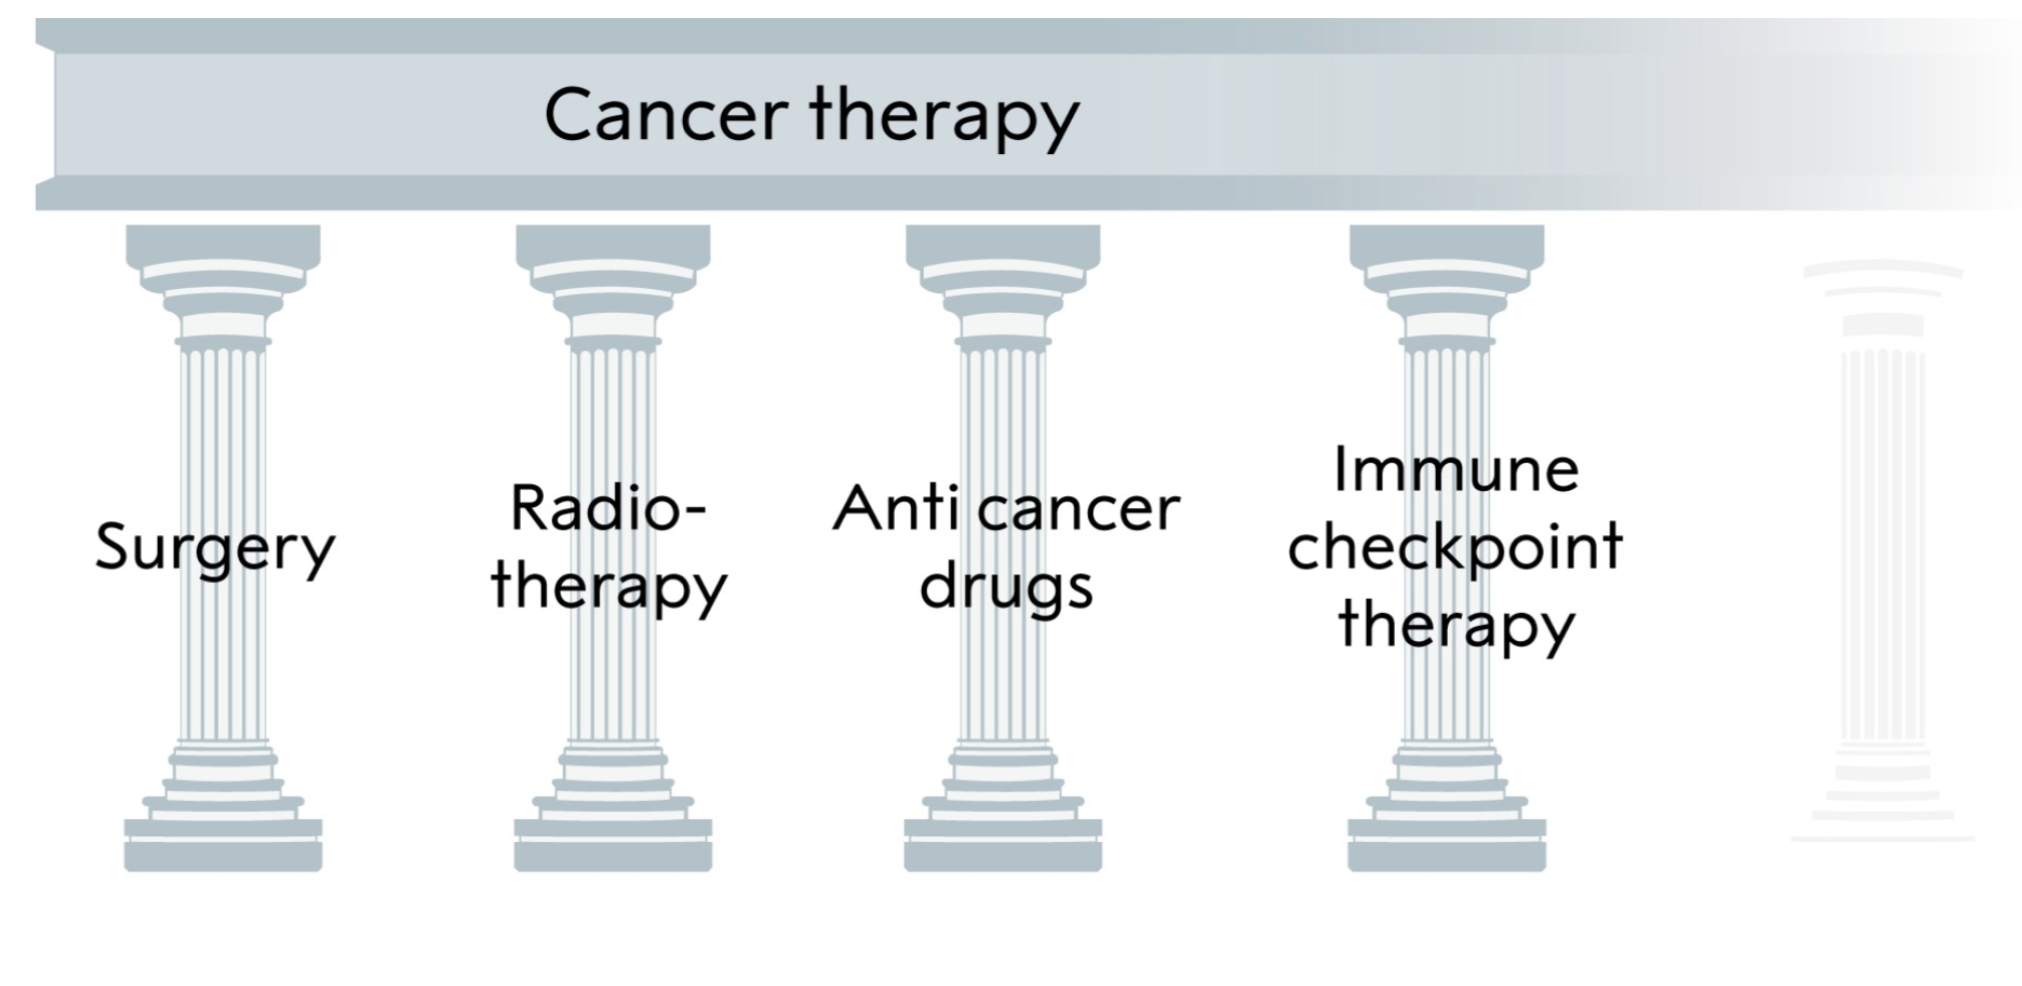 These are the pillars of cancer treatment. The latest one added by Allison and Honjo.